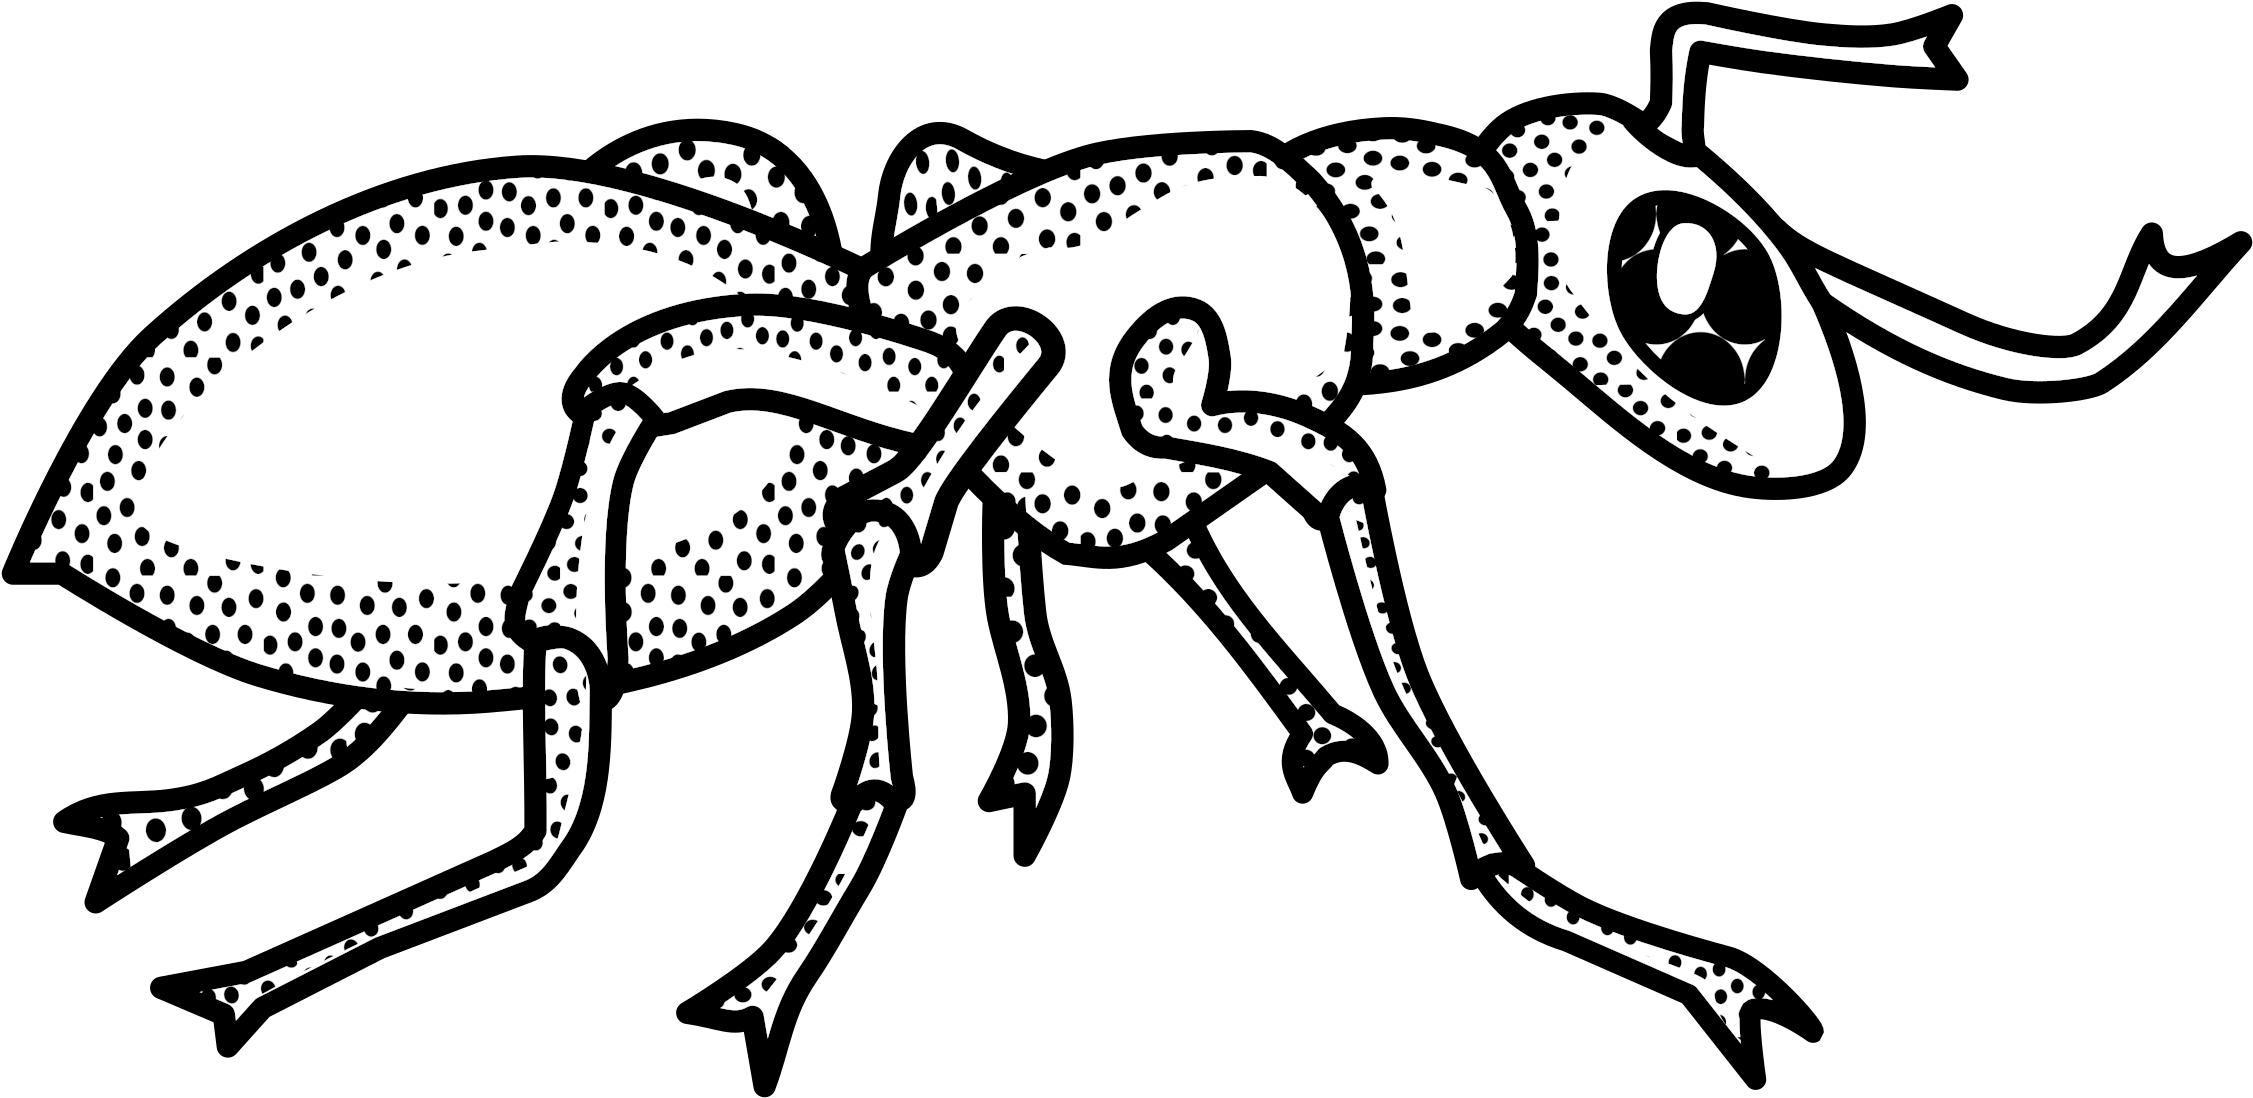 Ant drawing png. Download hd this free